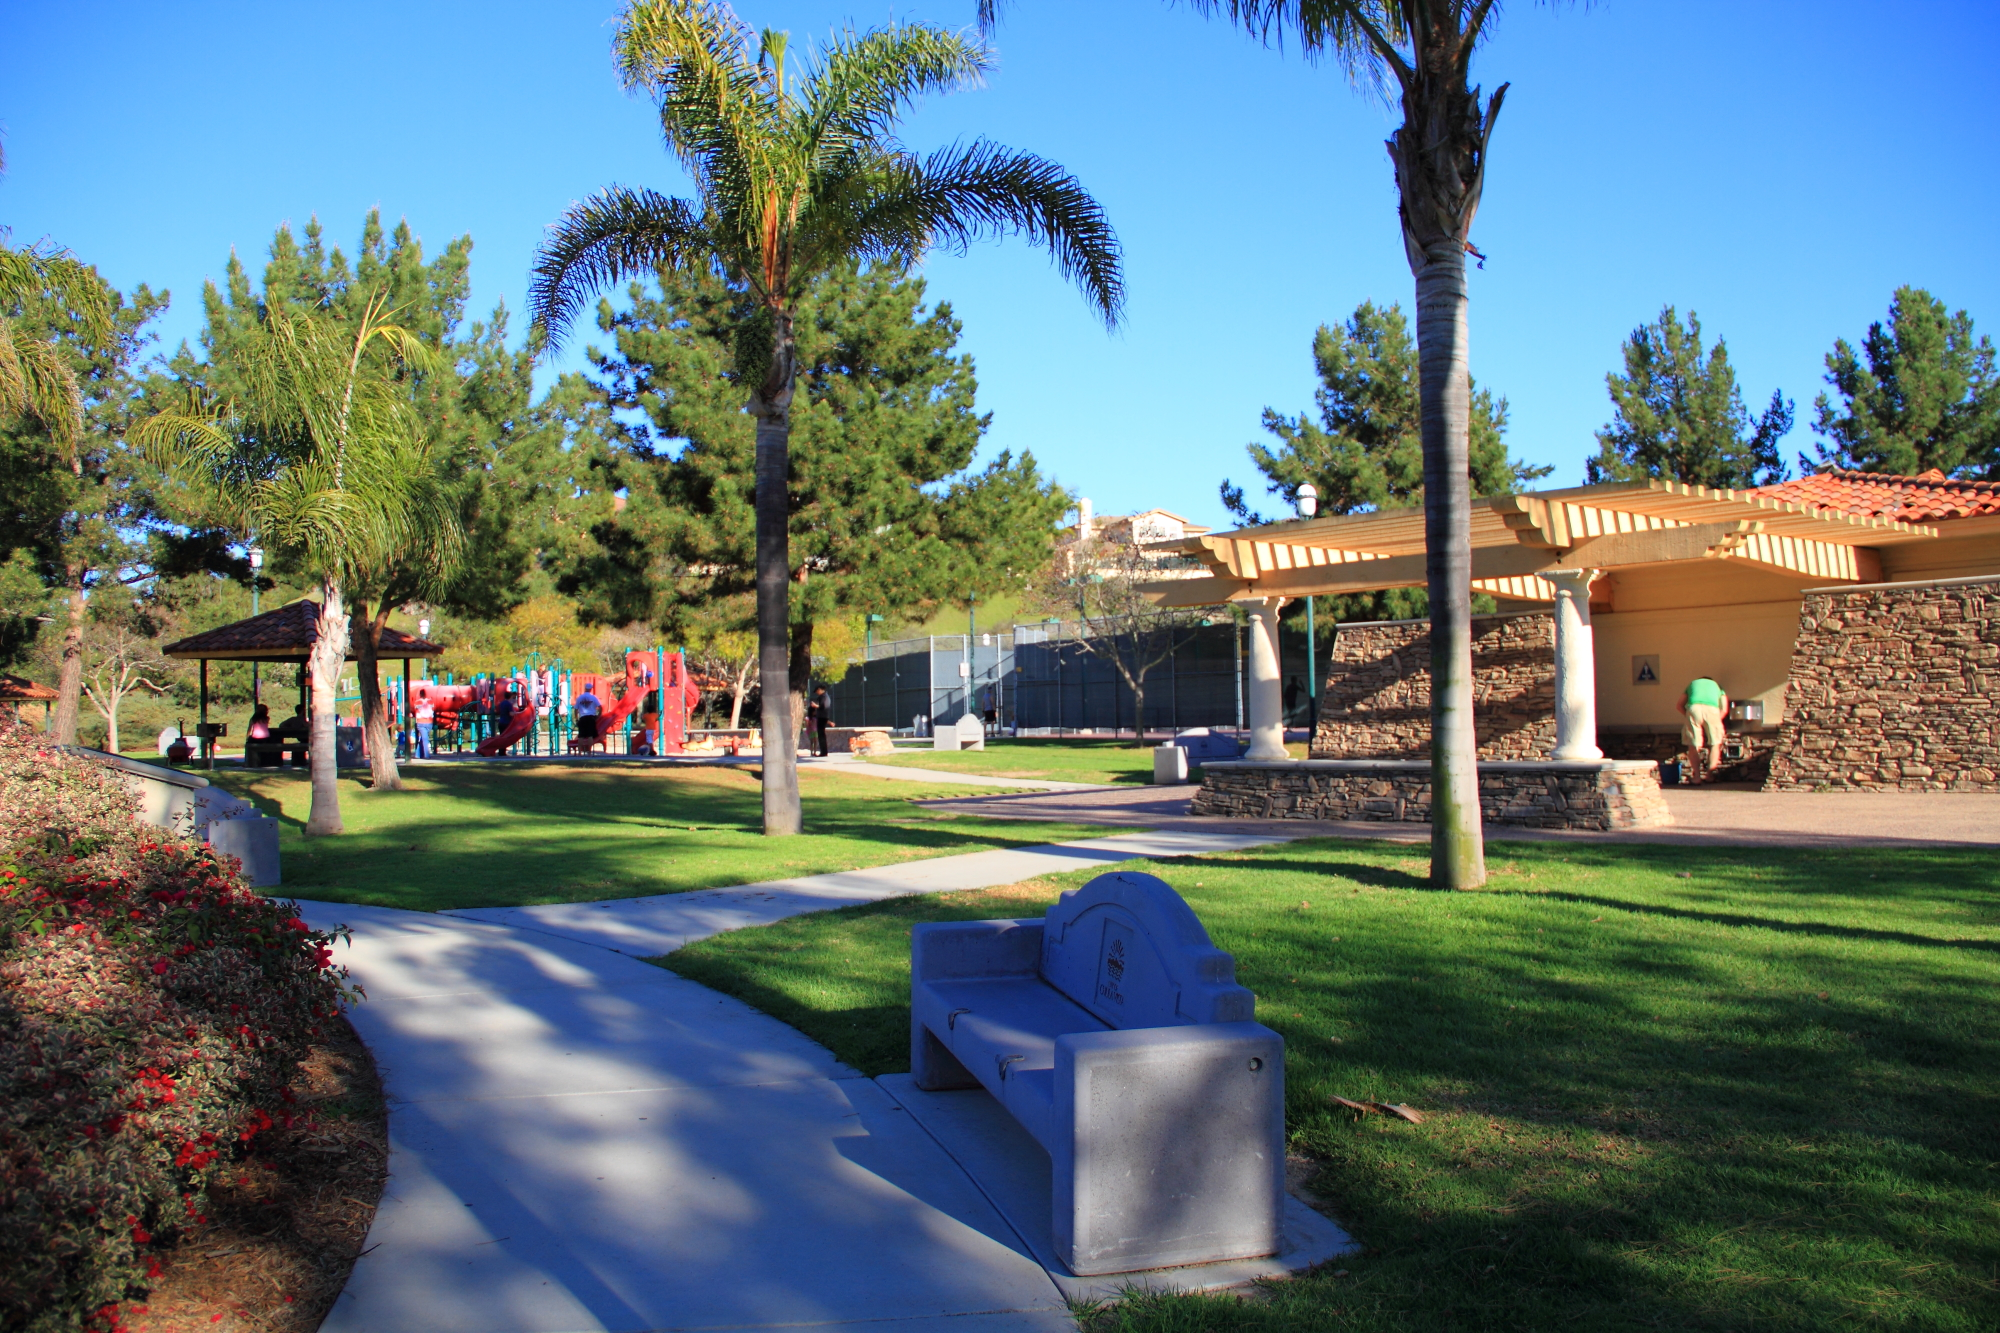 Play area and tennis courts.